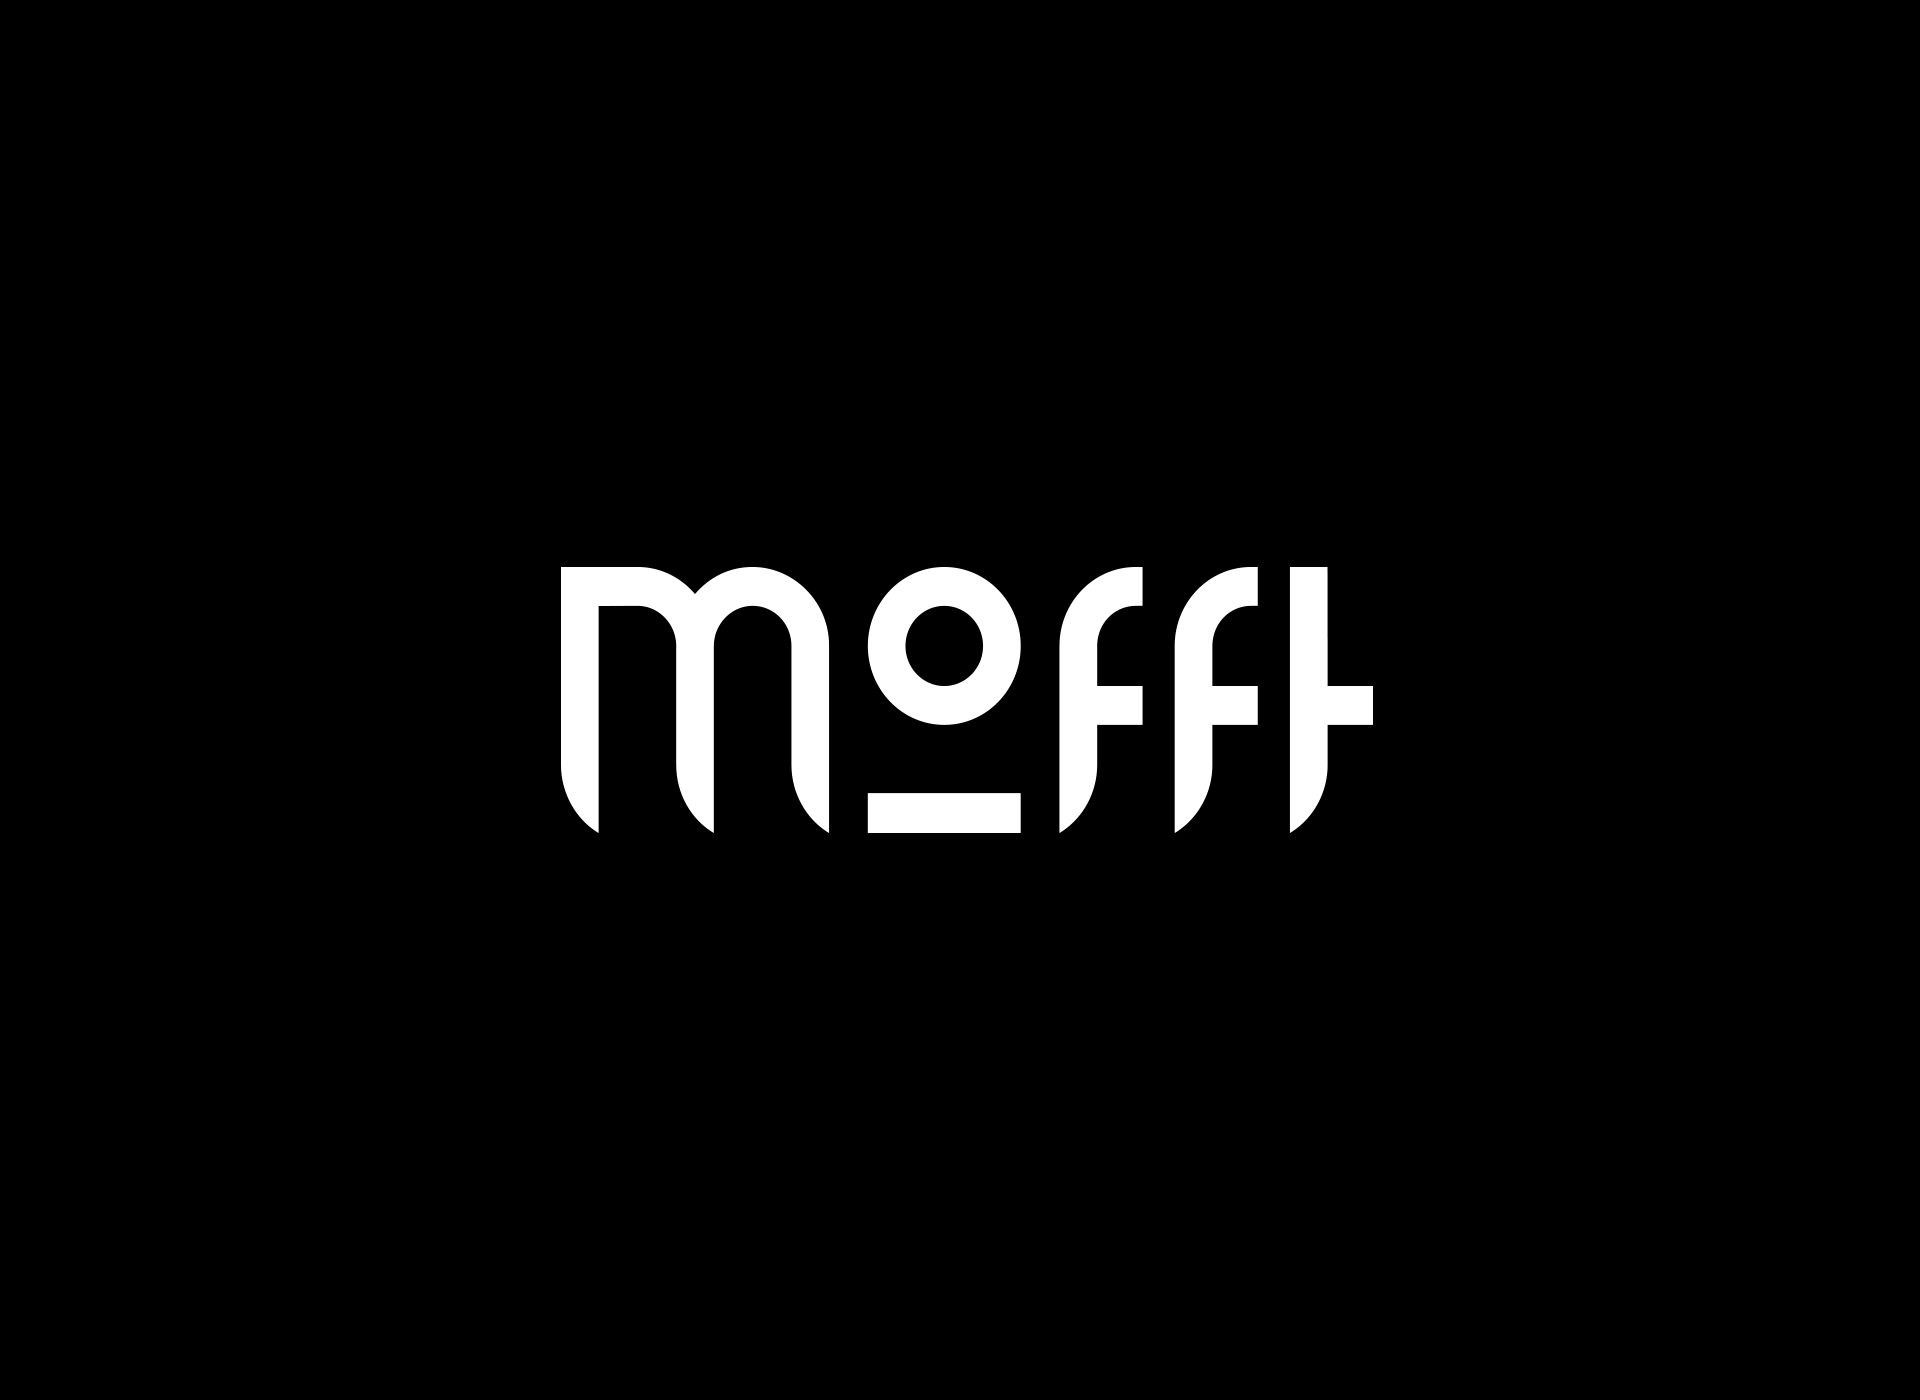 Mofft